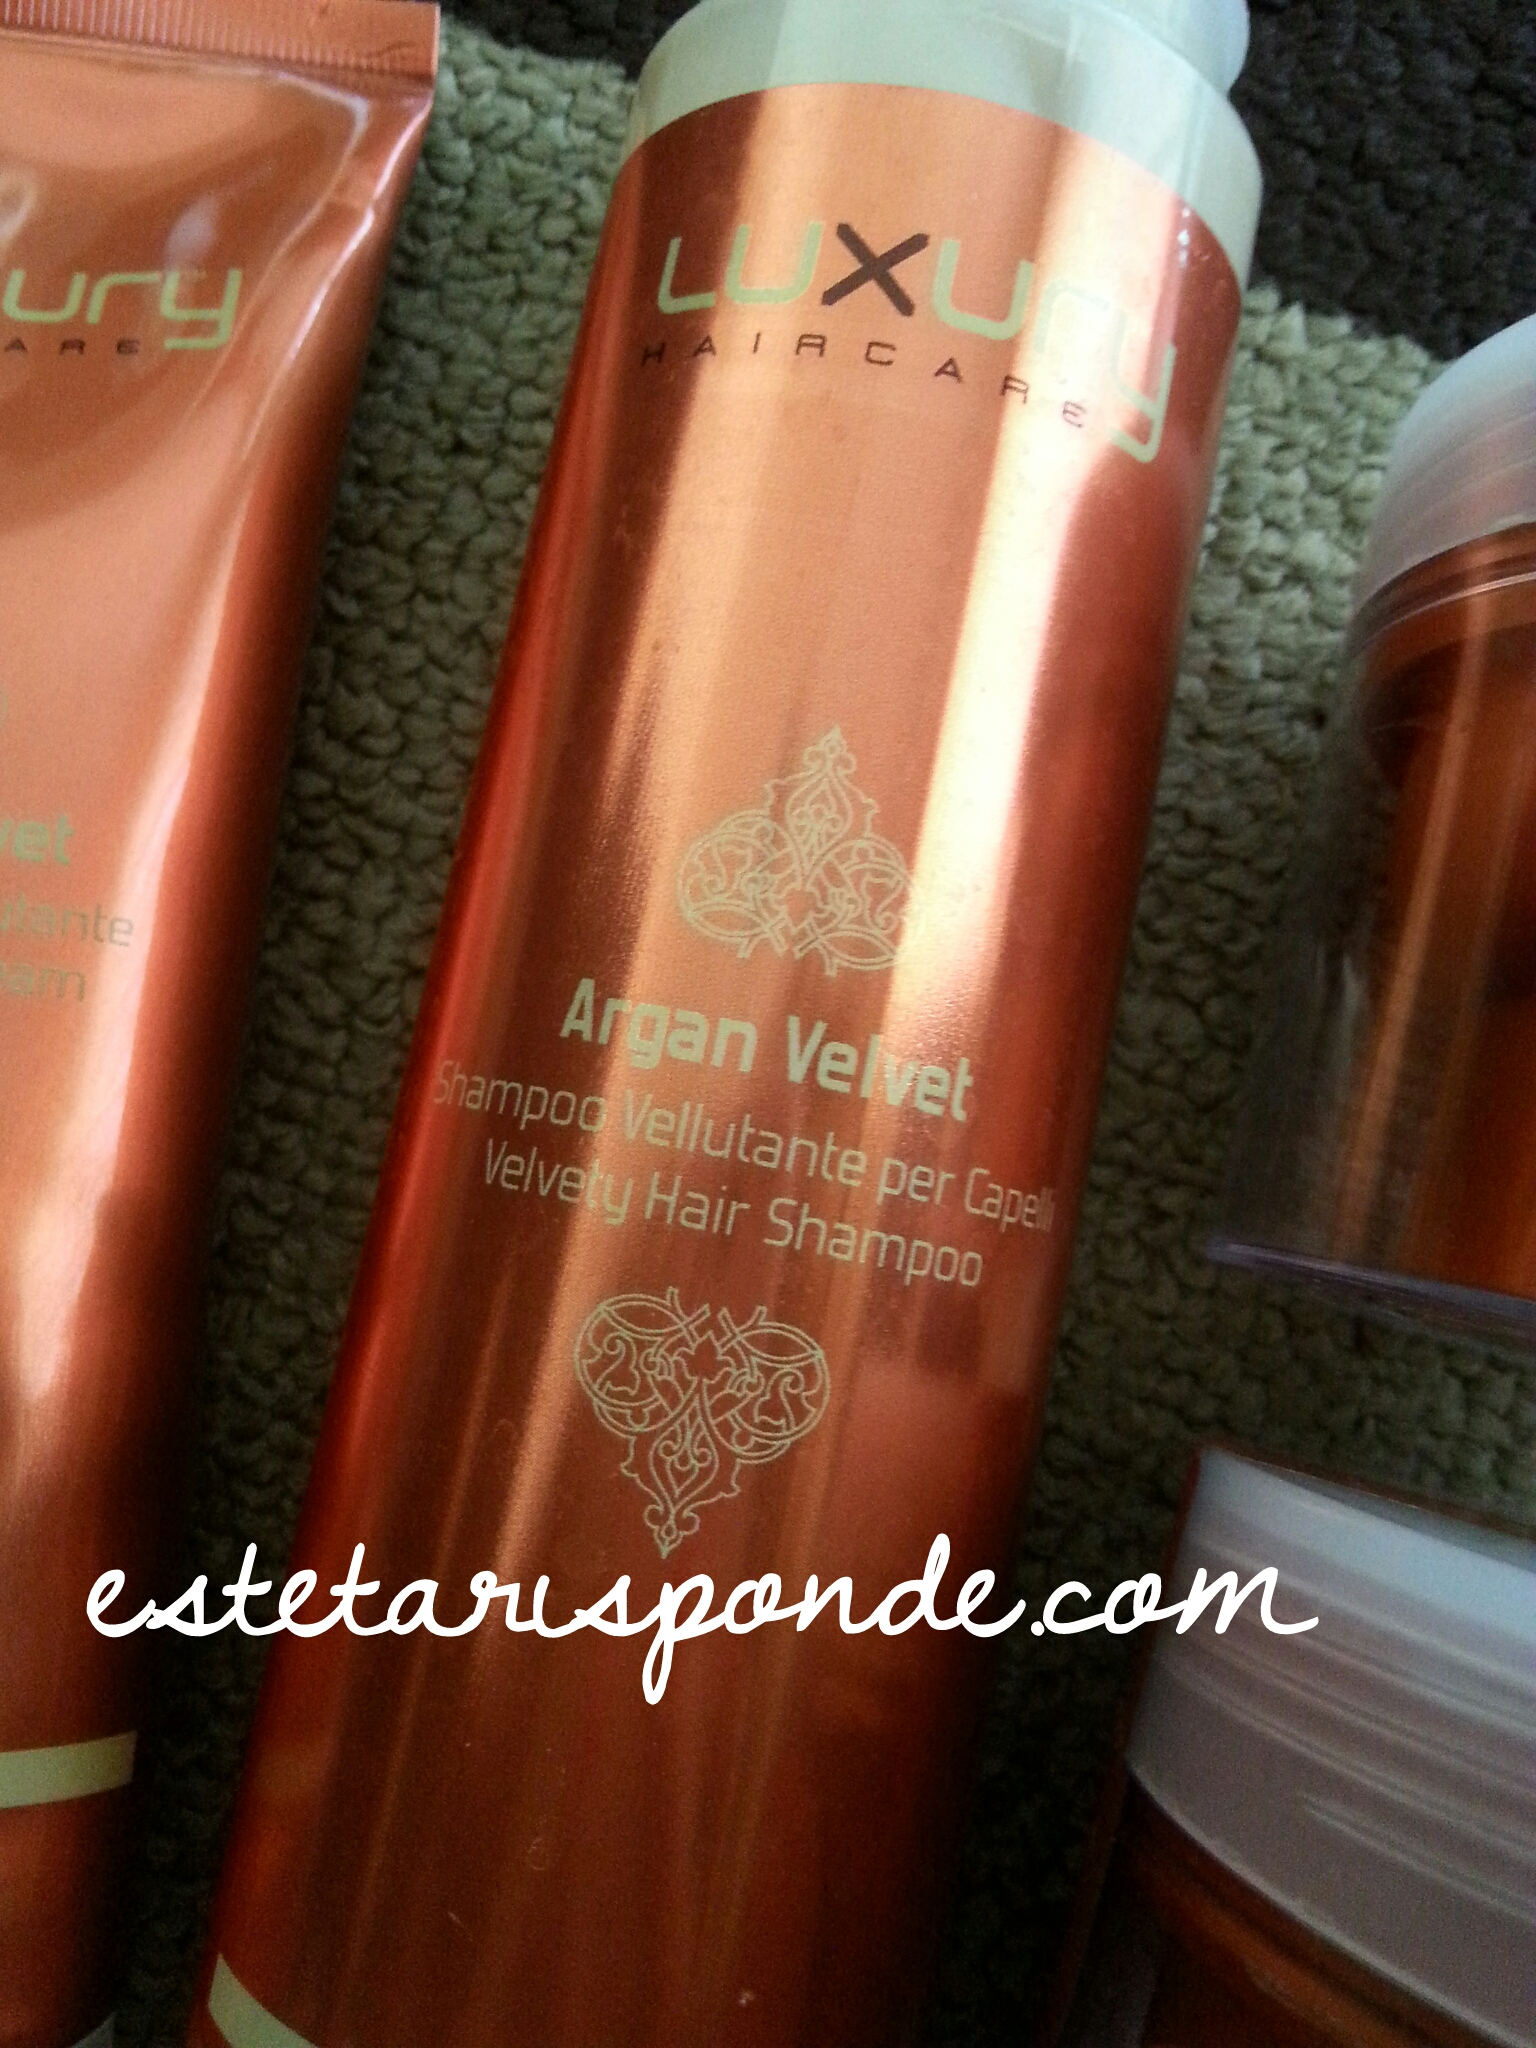 Argan Velvet Green Light shampoo vellutante